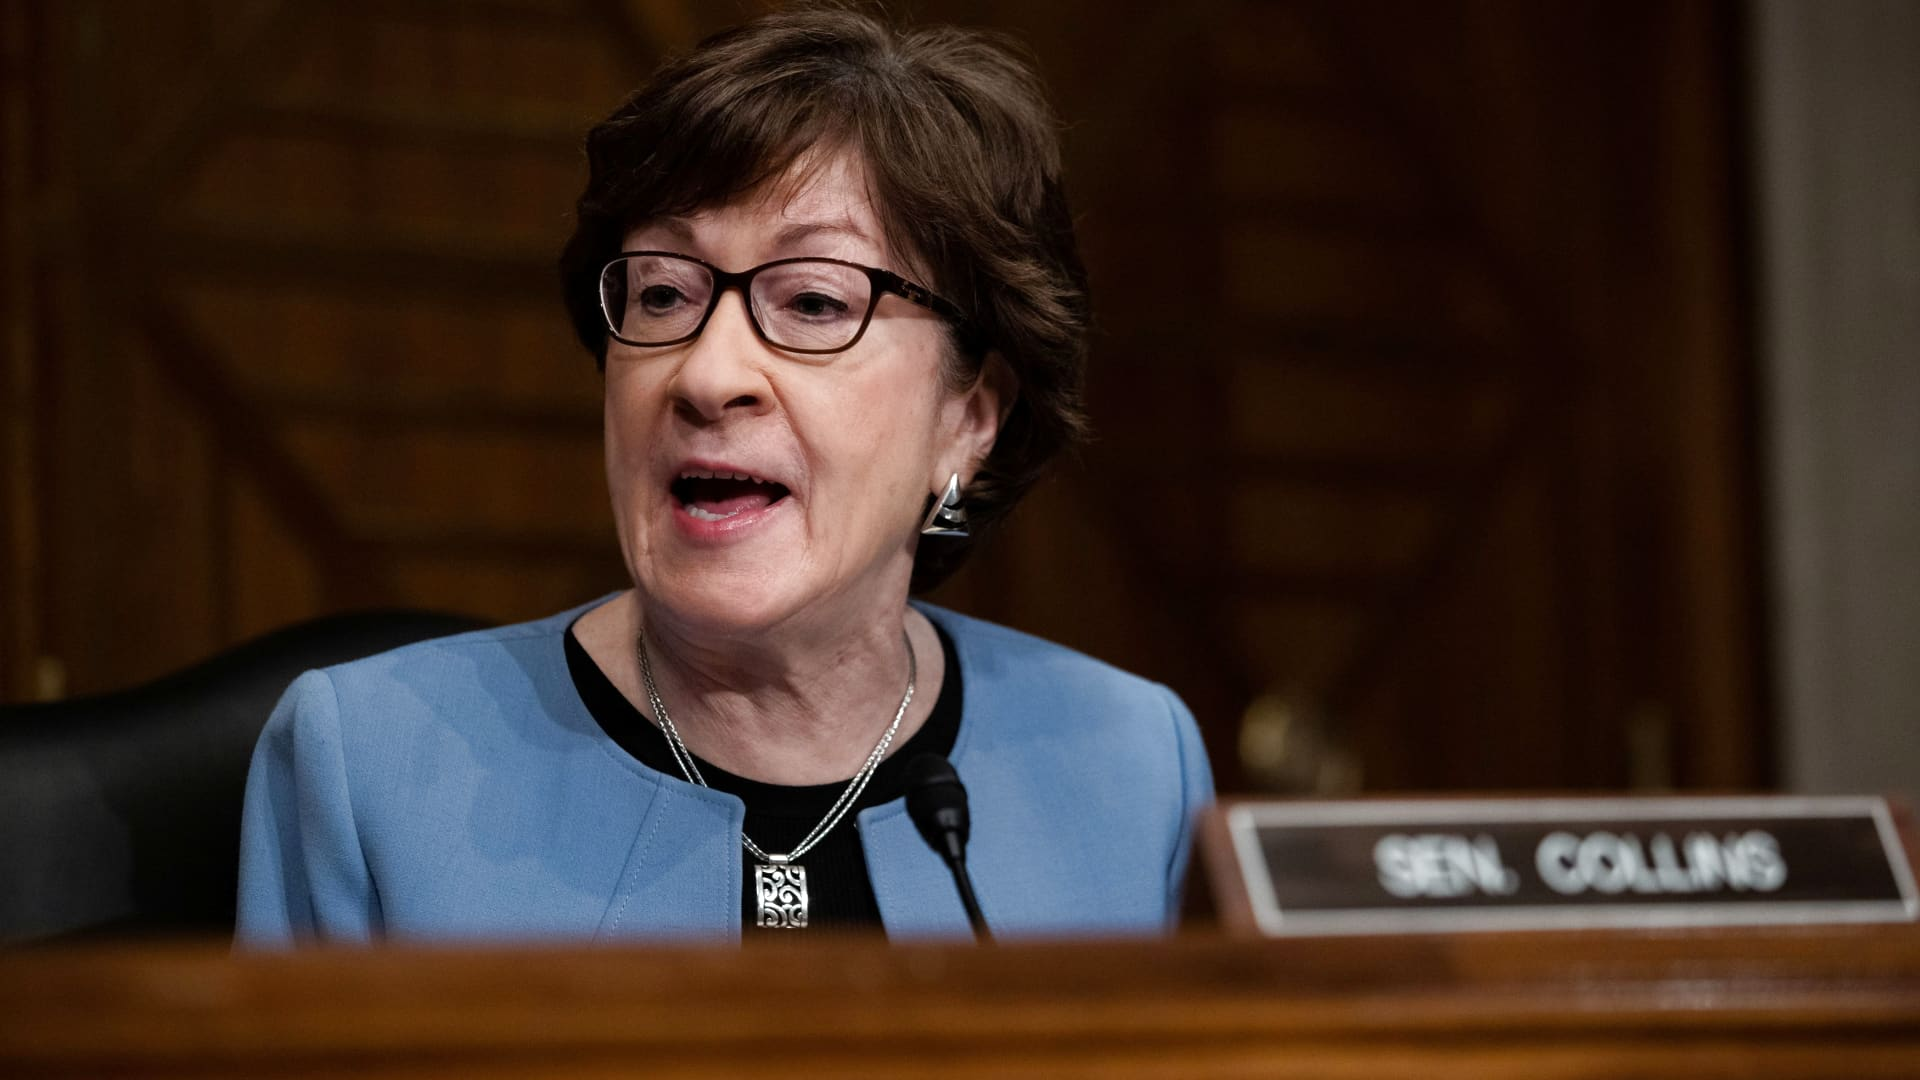 Senator Susan Collins, R-ME, speaks during a hearing for Marty Walsh to be labor secretary, on Capitol Hill in Washington, DC, February 4, 2021.